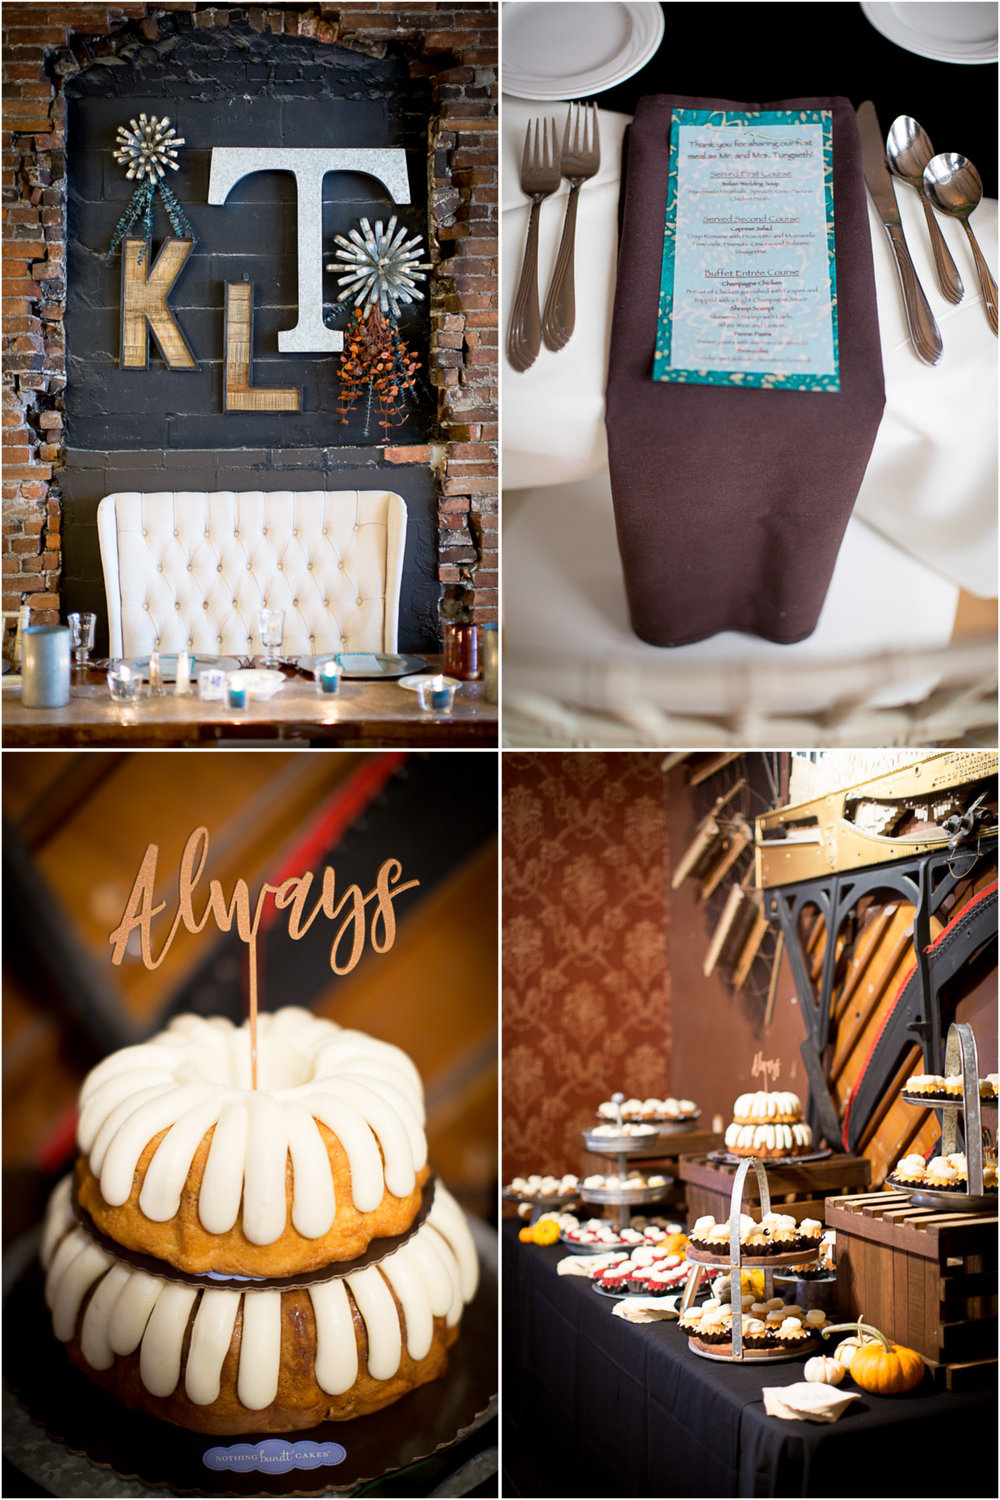 23-loft-at-studio-j-stillwater-mn-wedding-reception-details-initials-moonogram-head-table-fall-colors-brown-napkins-turquois-menus-place-setting-dessert-nothing-bundt-cakes-minnesota-photographer-mahonen-photography.jpg